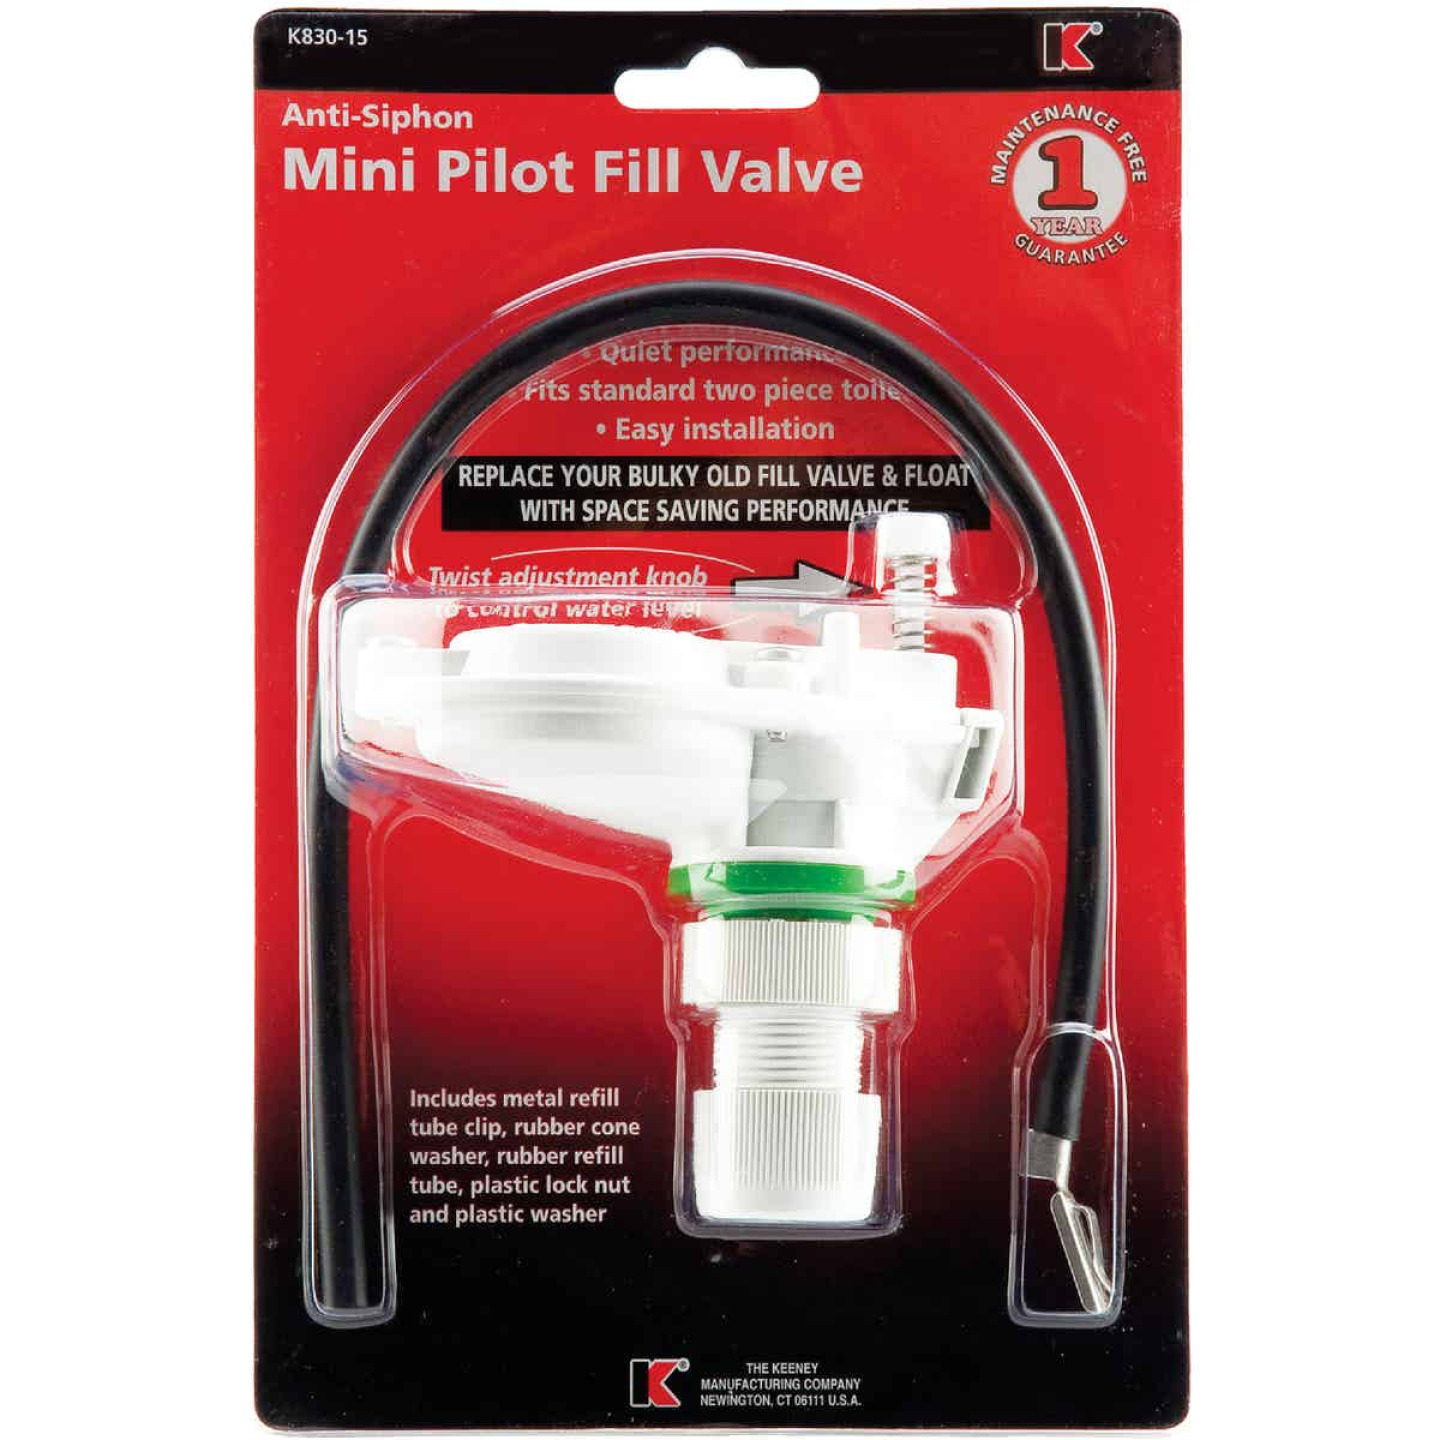 Do it Plastic Toilet Tank Fill Valve  Image 2